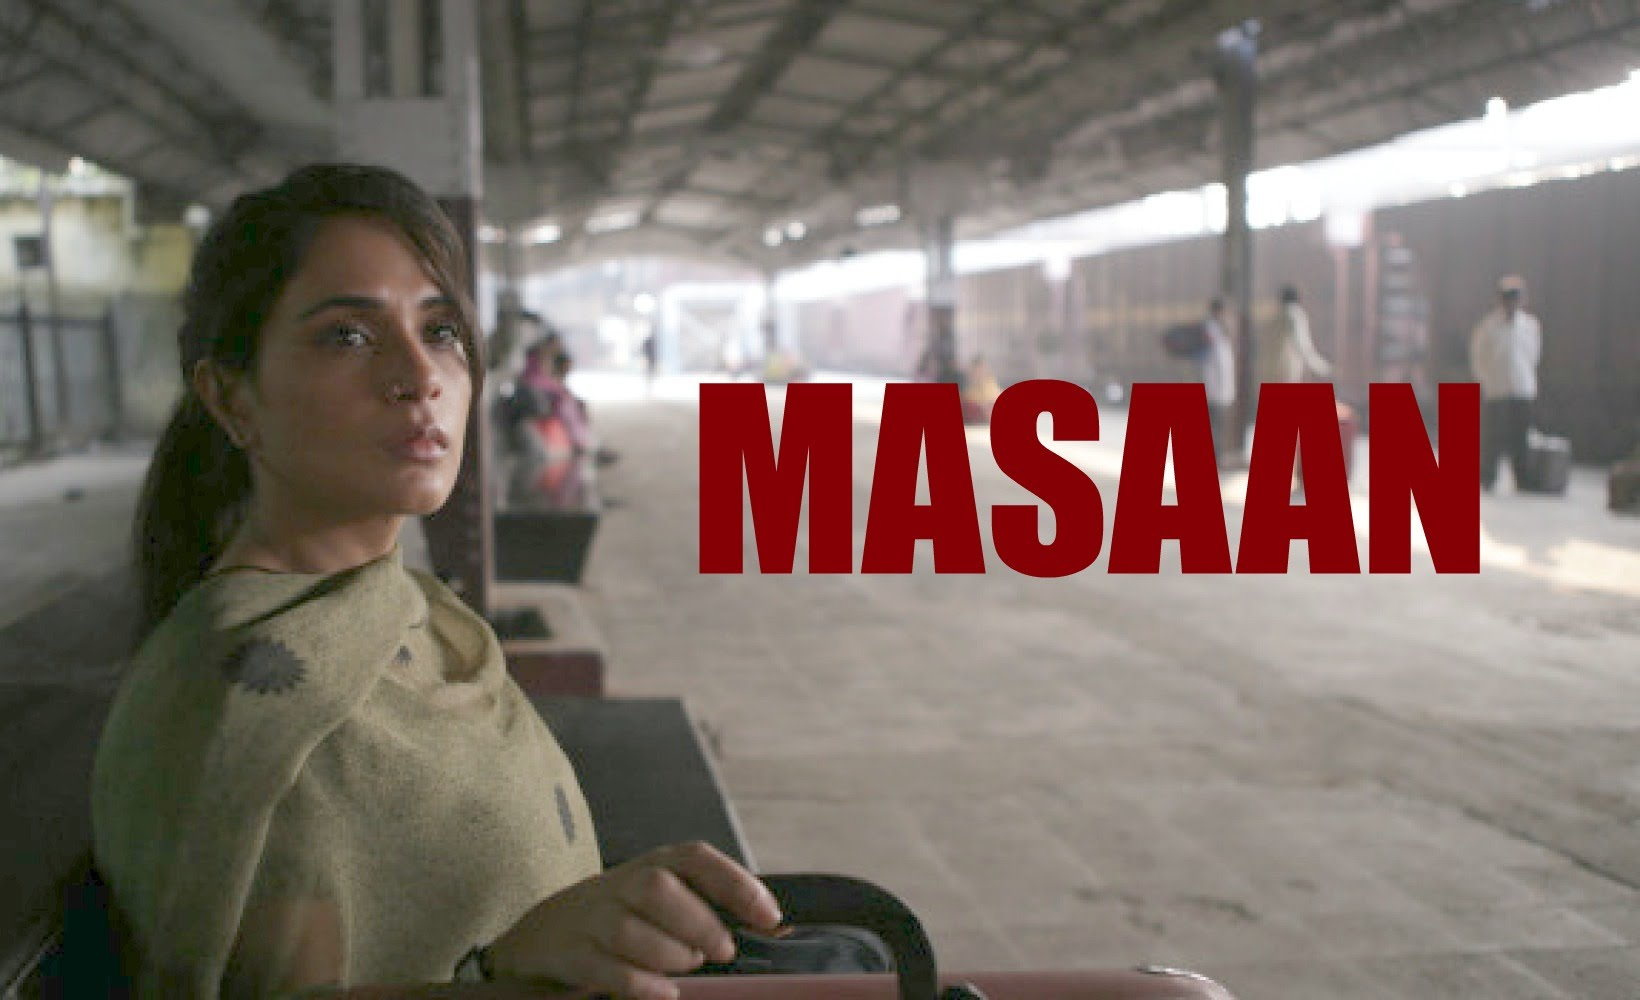 Today's Masaan Film 4th Day Box Office Collection Earning Report